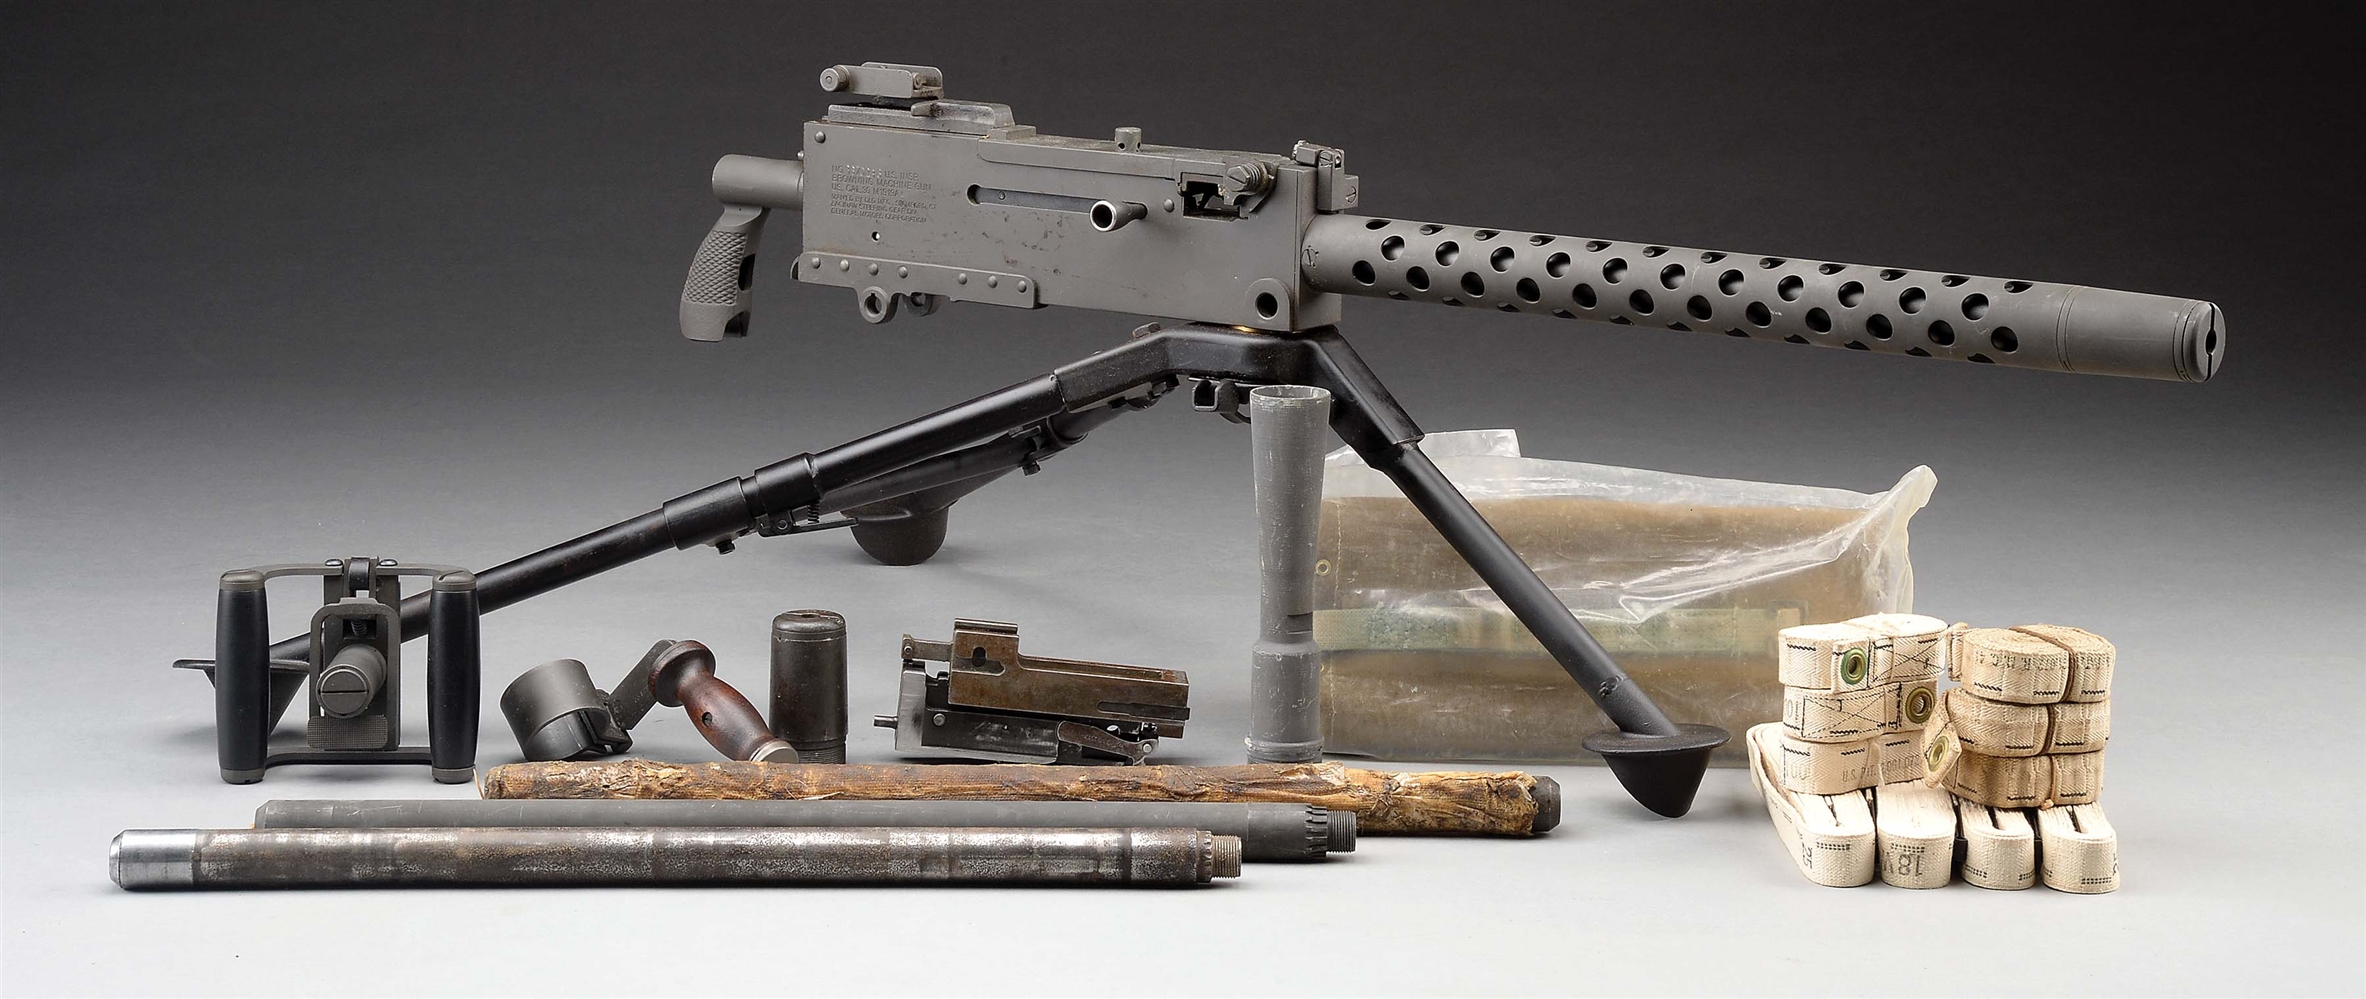 (N) High Condition DLO Registered Sideplate Browning 1919 A4 Machine Gun with Tripod and Numerous Extras (Fully Transferable).